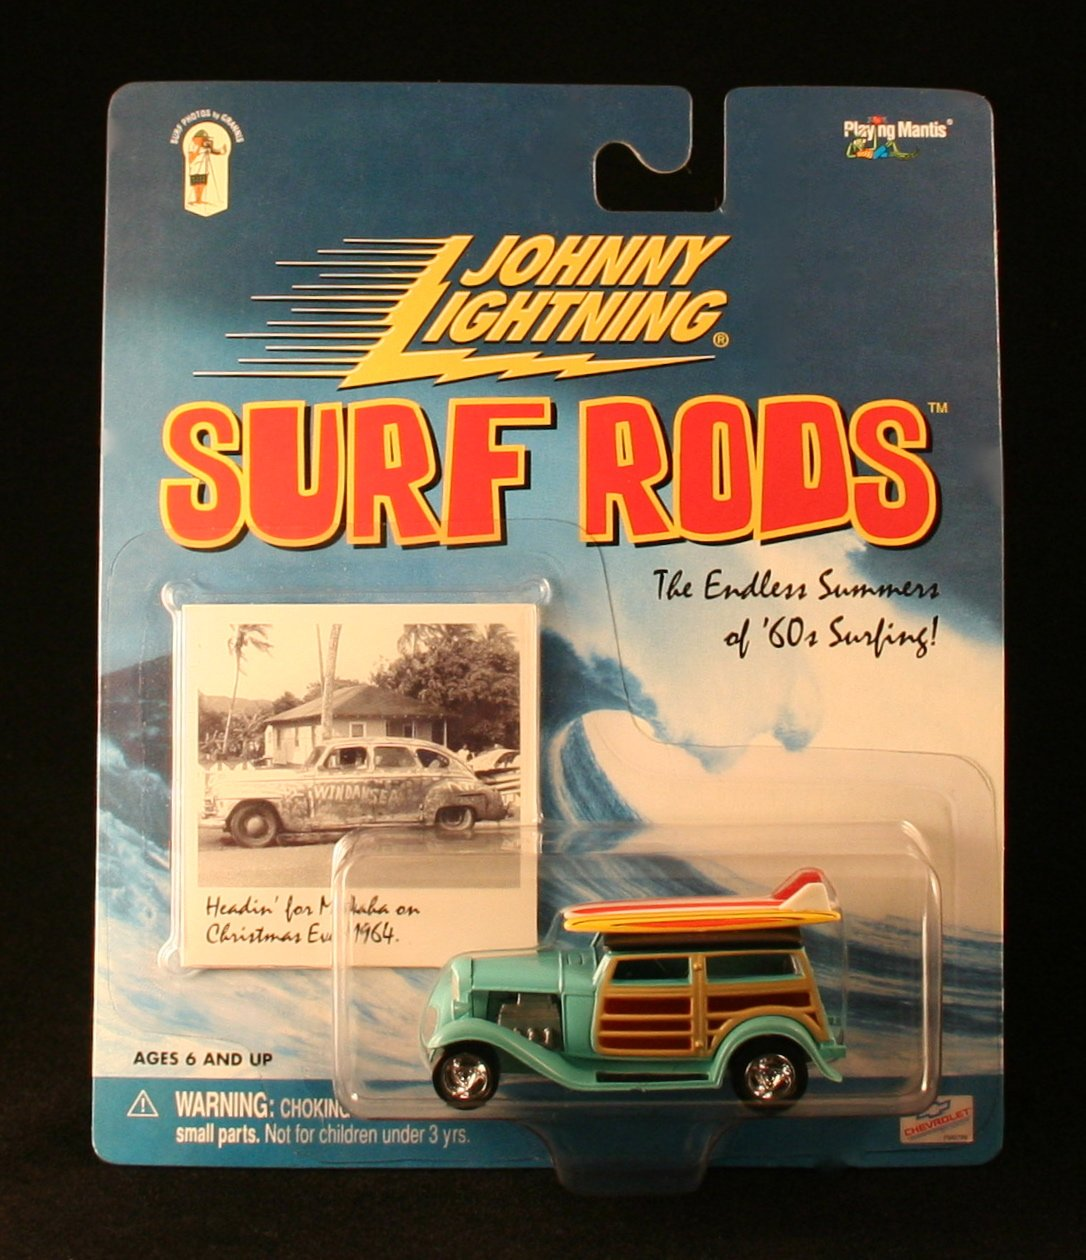 DA SURF WOODY  Blau  Johnny Lightning 2000 SURF RODS Release One 1:64 Scale Die Cast Vehicle by Johnny Lightning